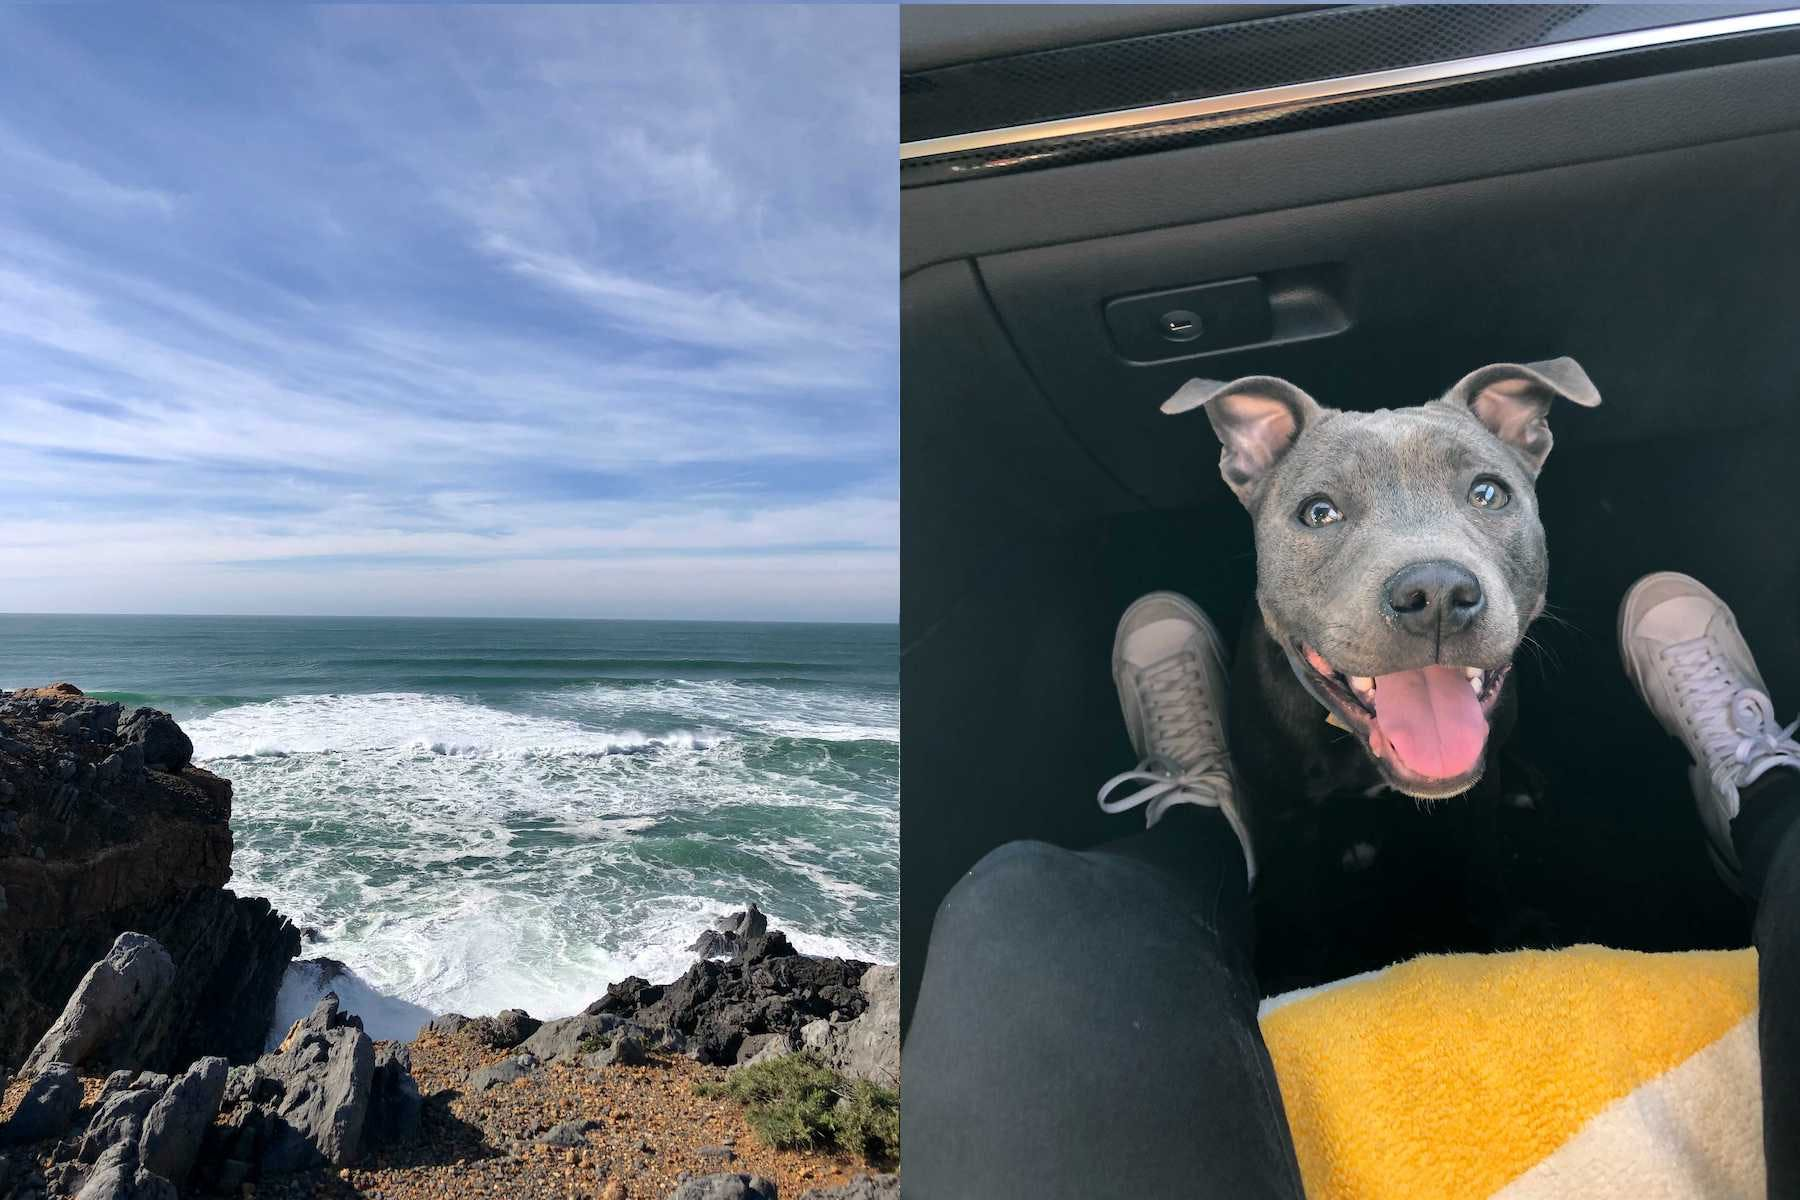 ocean view in one picture and a dog in a car in another